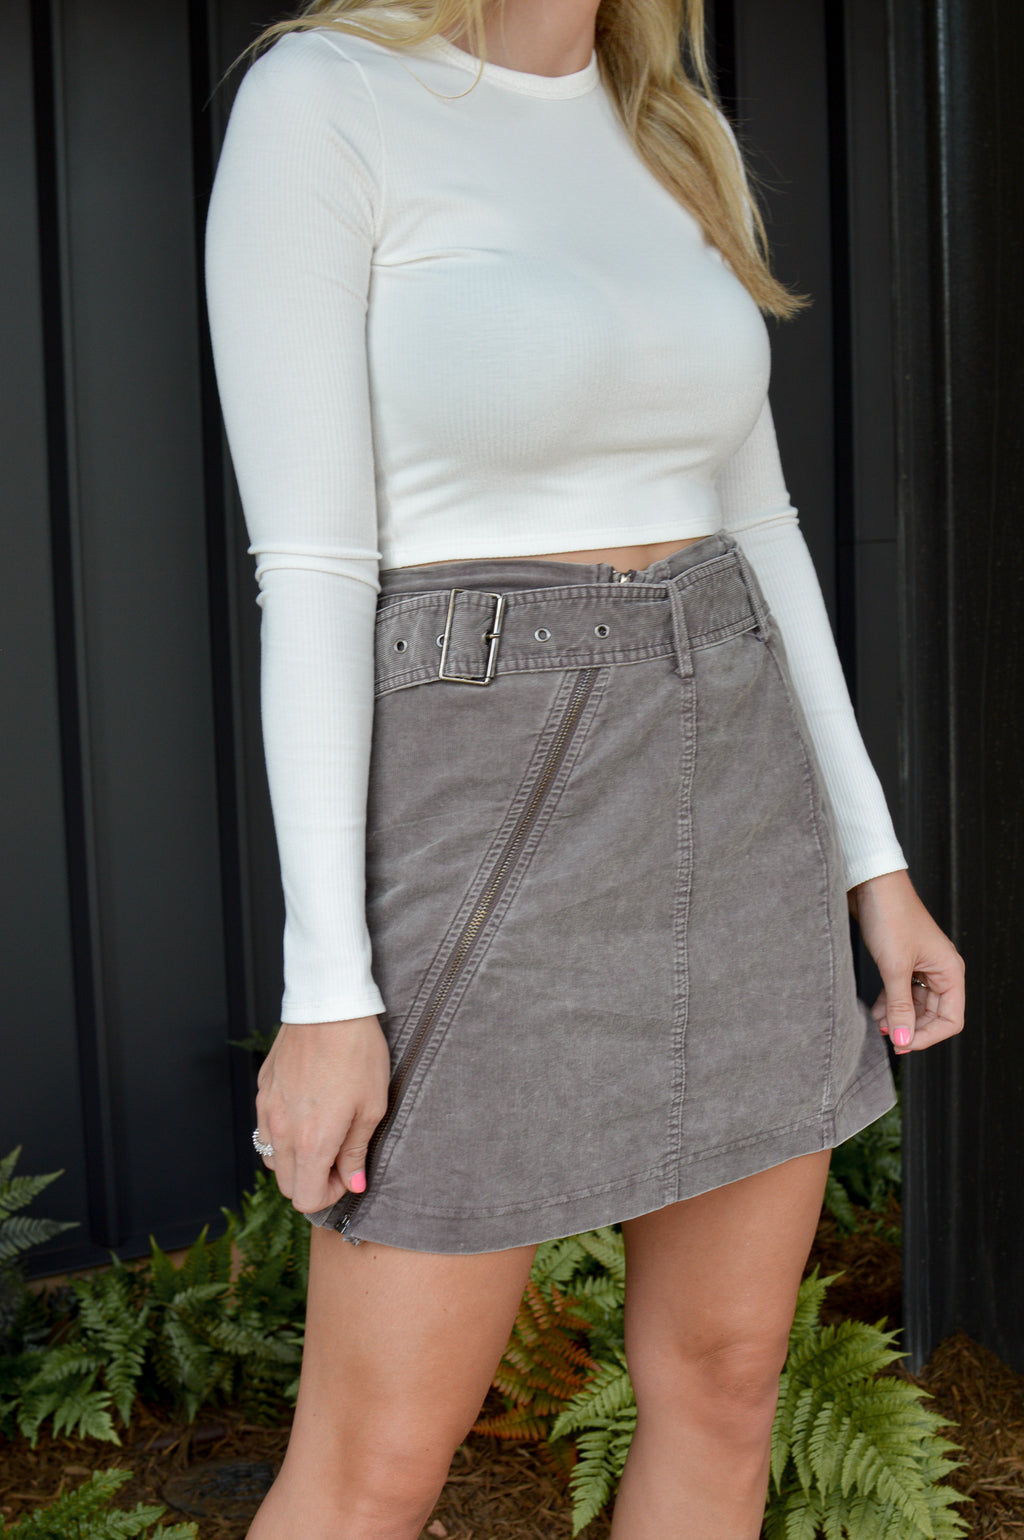 THE JENNA SKIRT